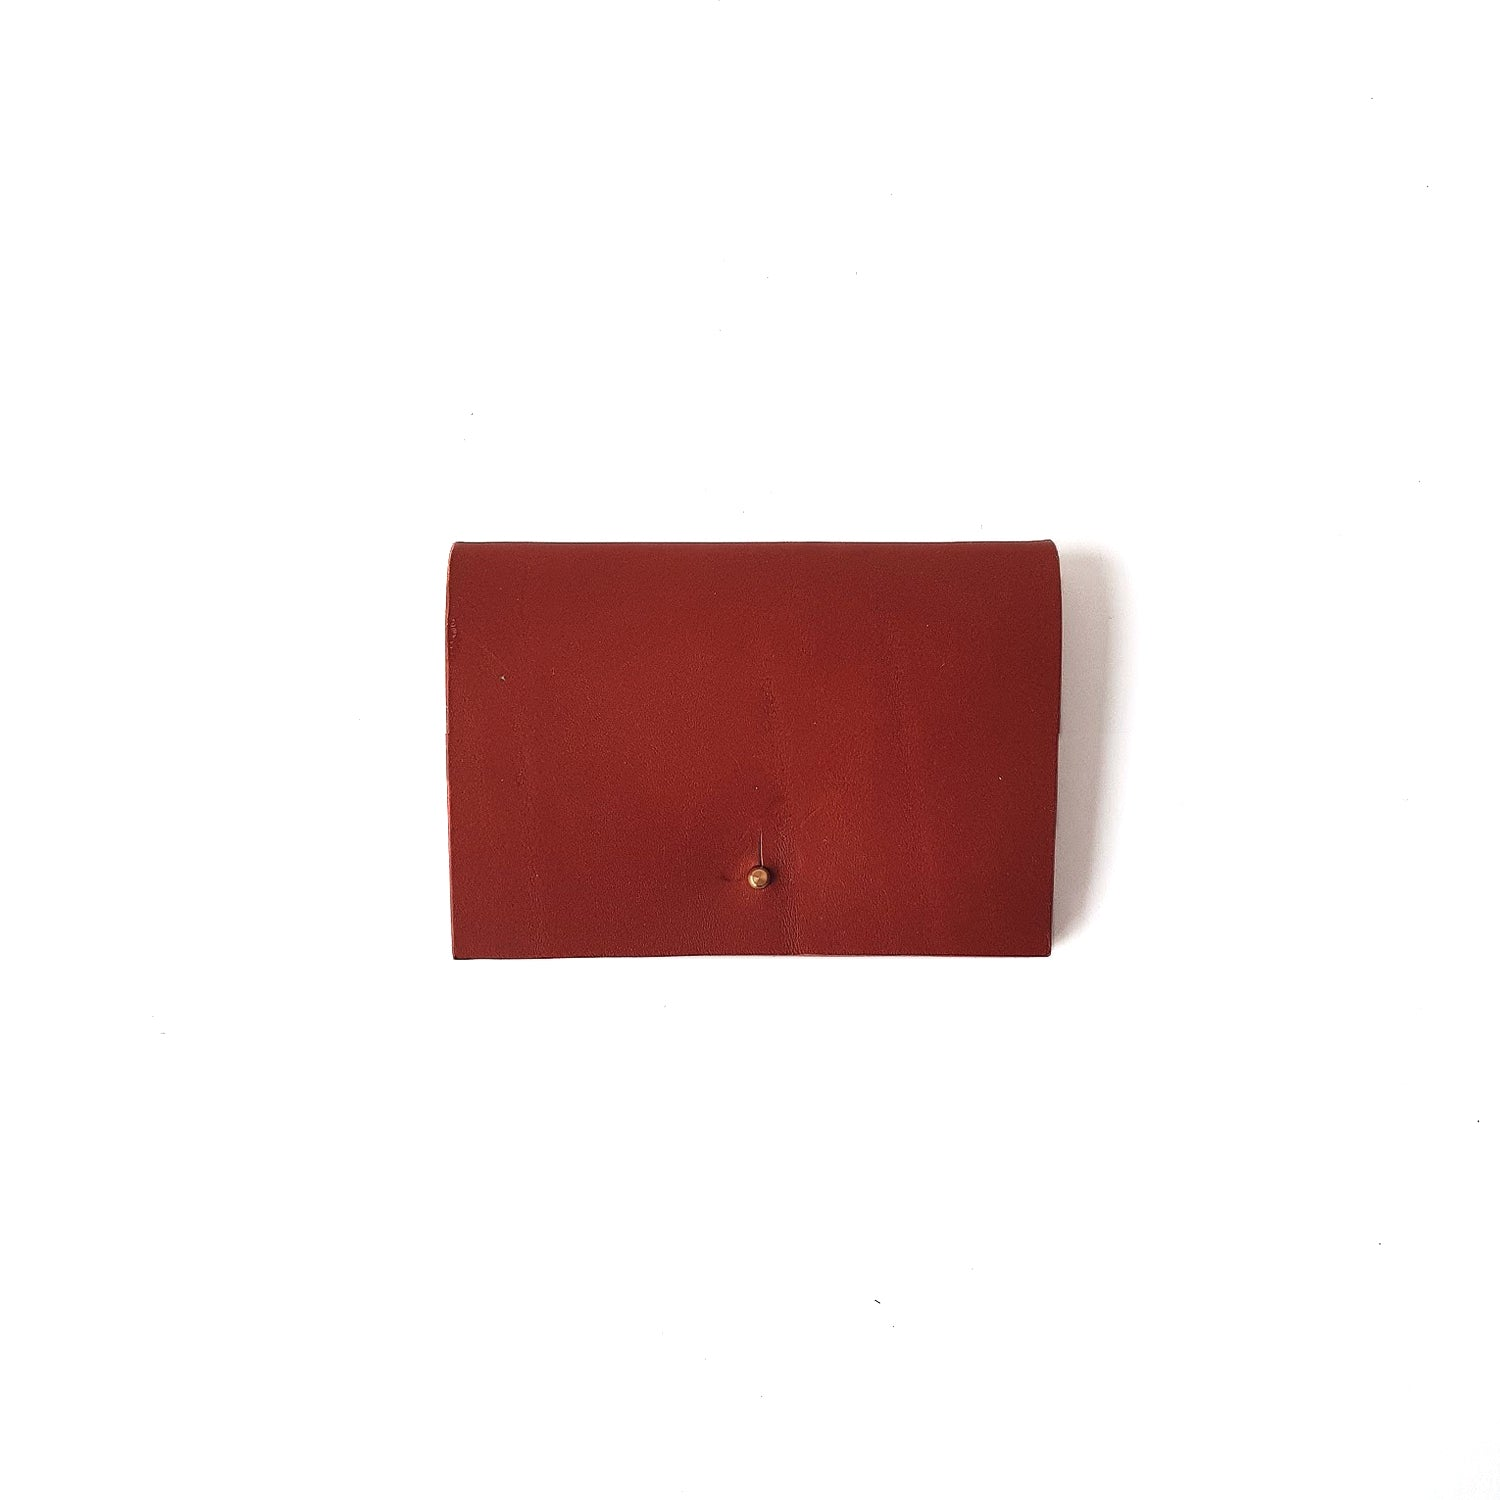 Small Wallet in Tan